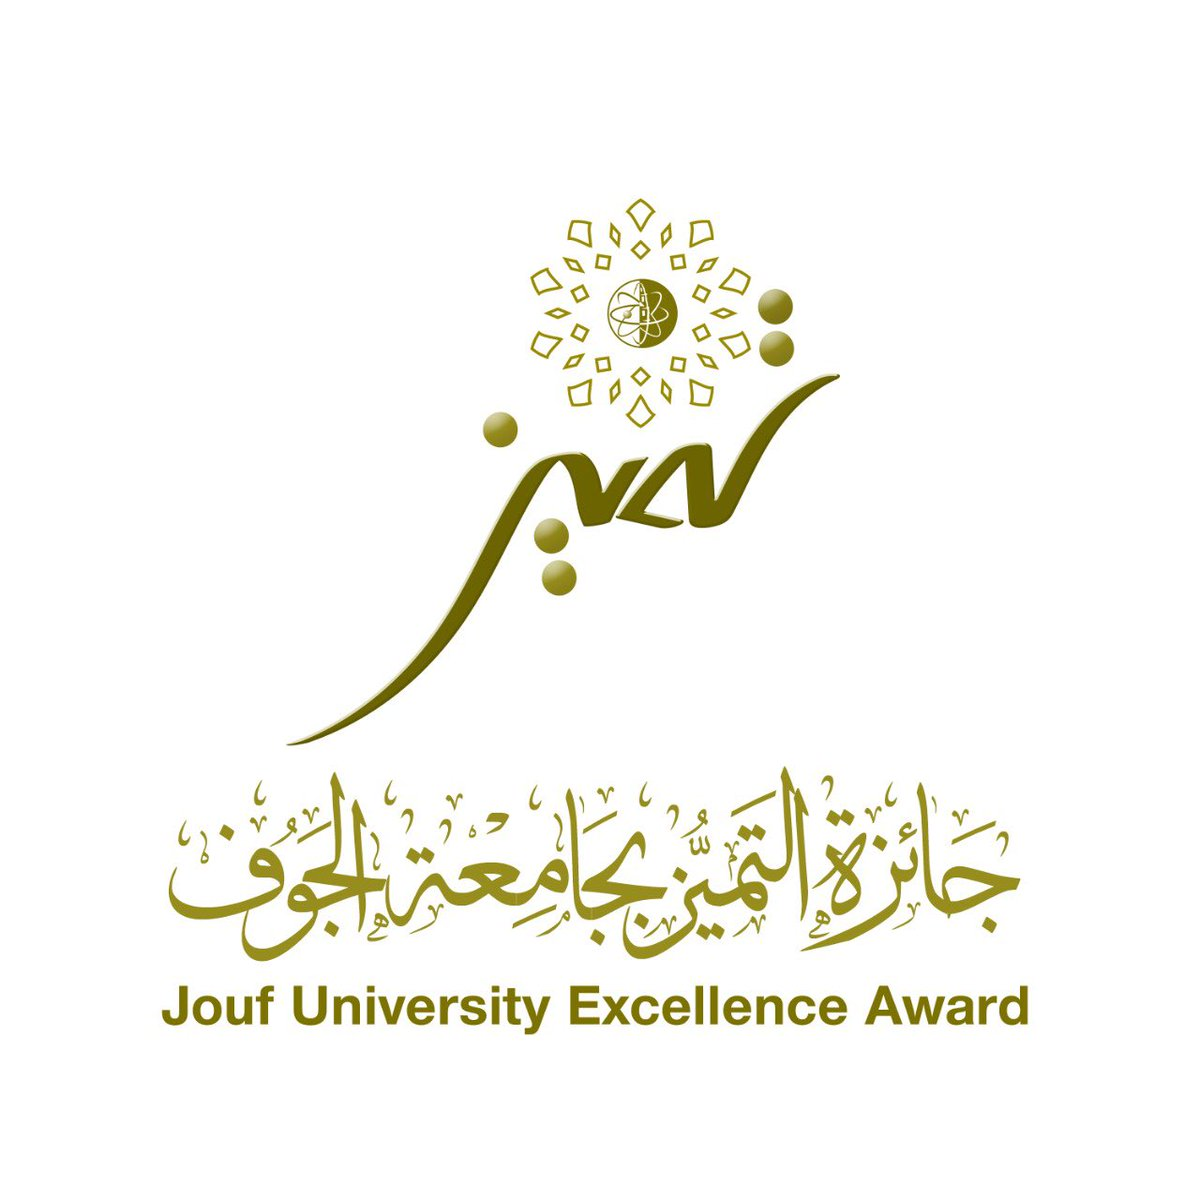 The University's Rectorate of Quality and Development Organizes Excellence Awards Ceremony for the First Time of Year 1439-1440H